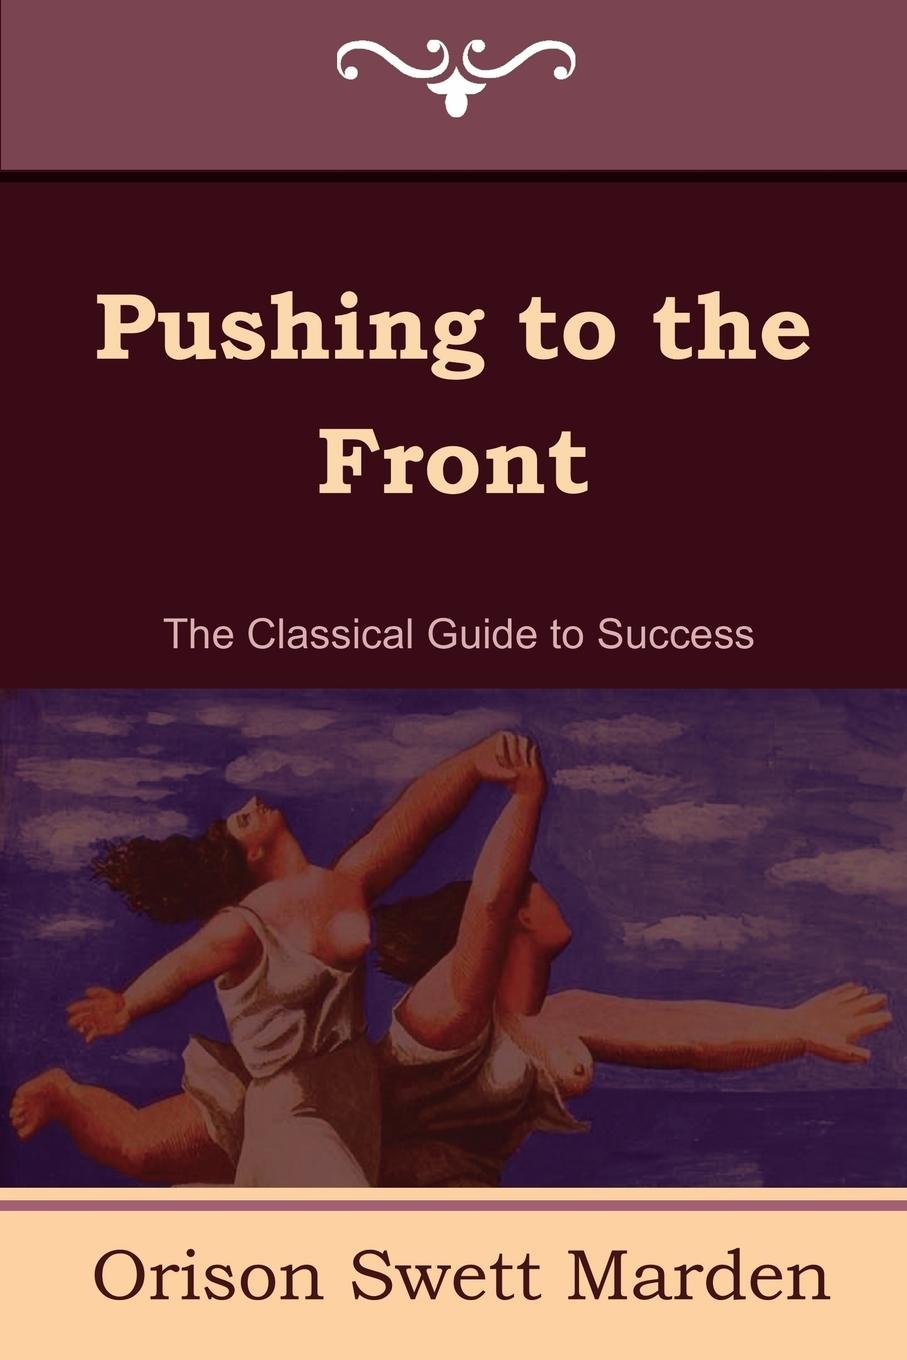 Download Pushing to the Front (the Complete Volume; Part 1 & 2) PDF